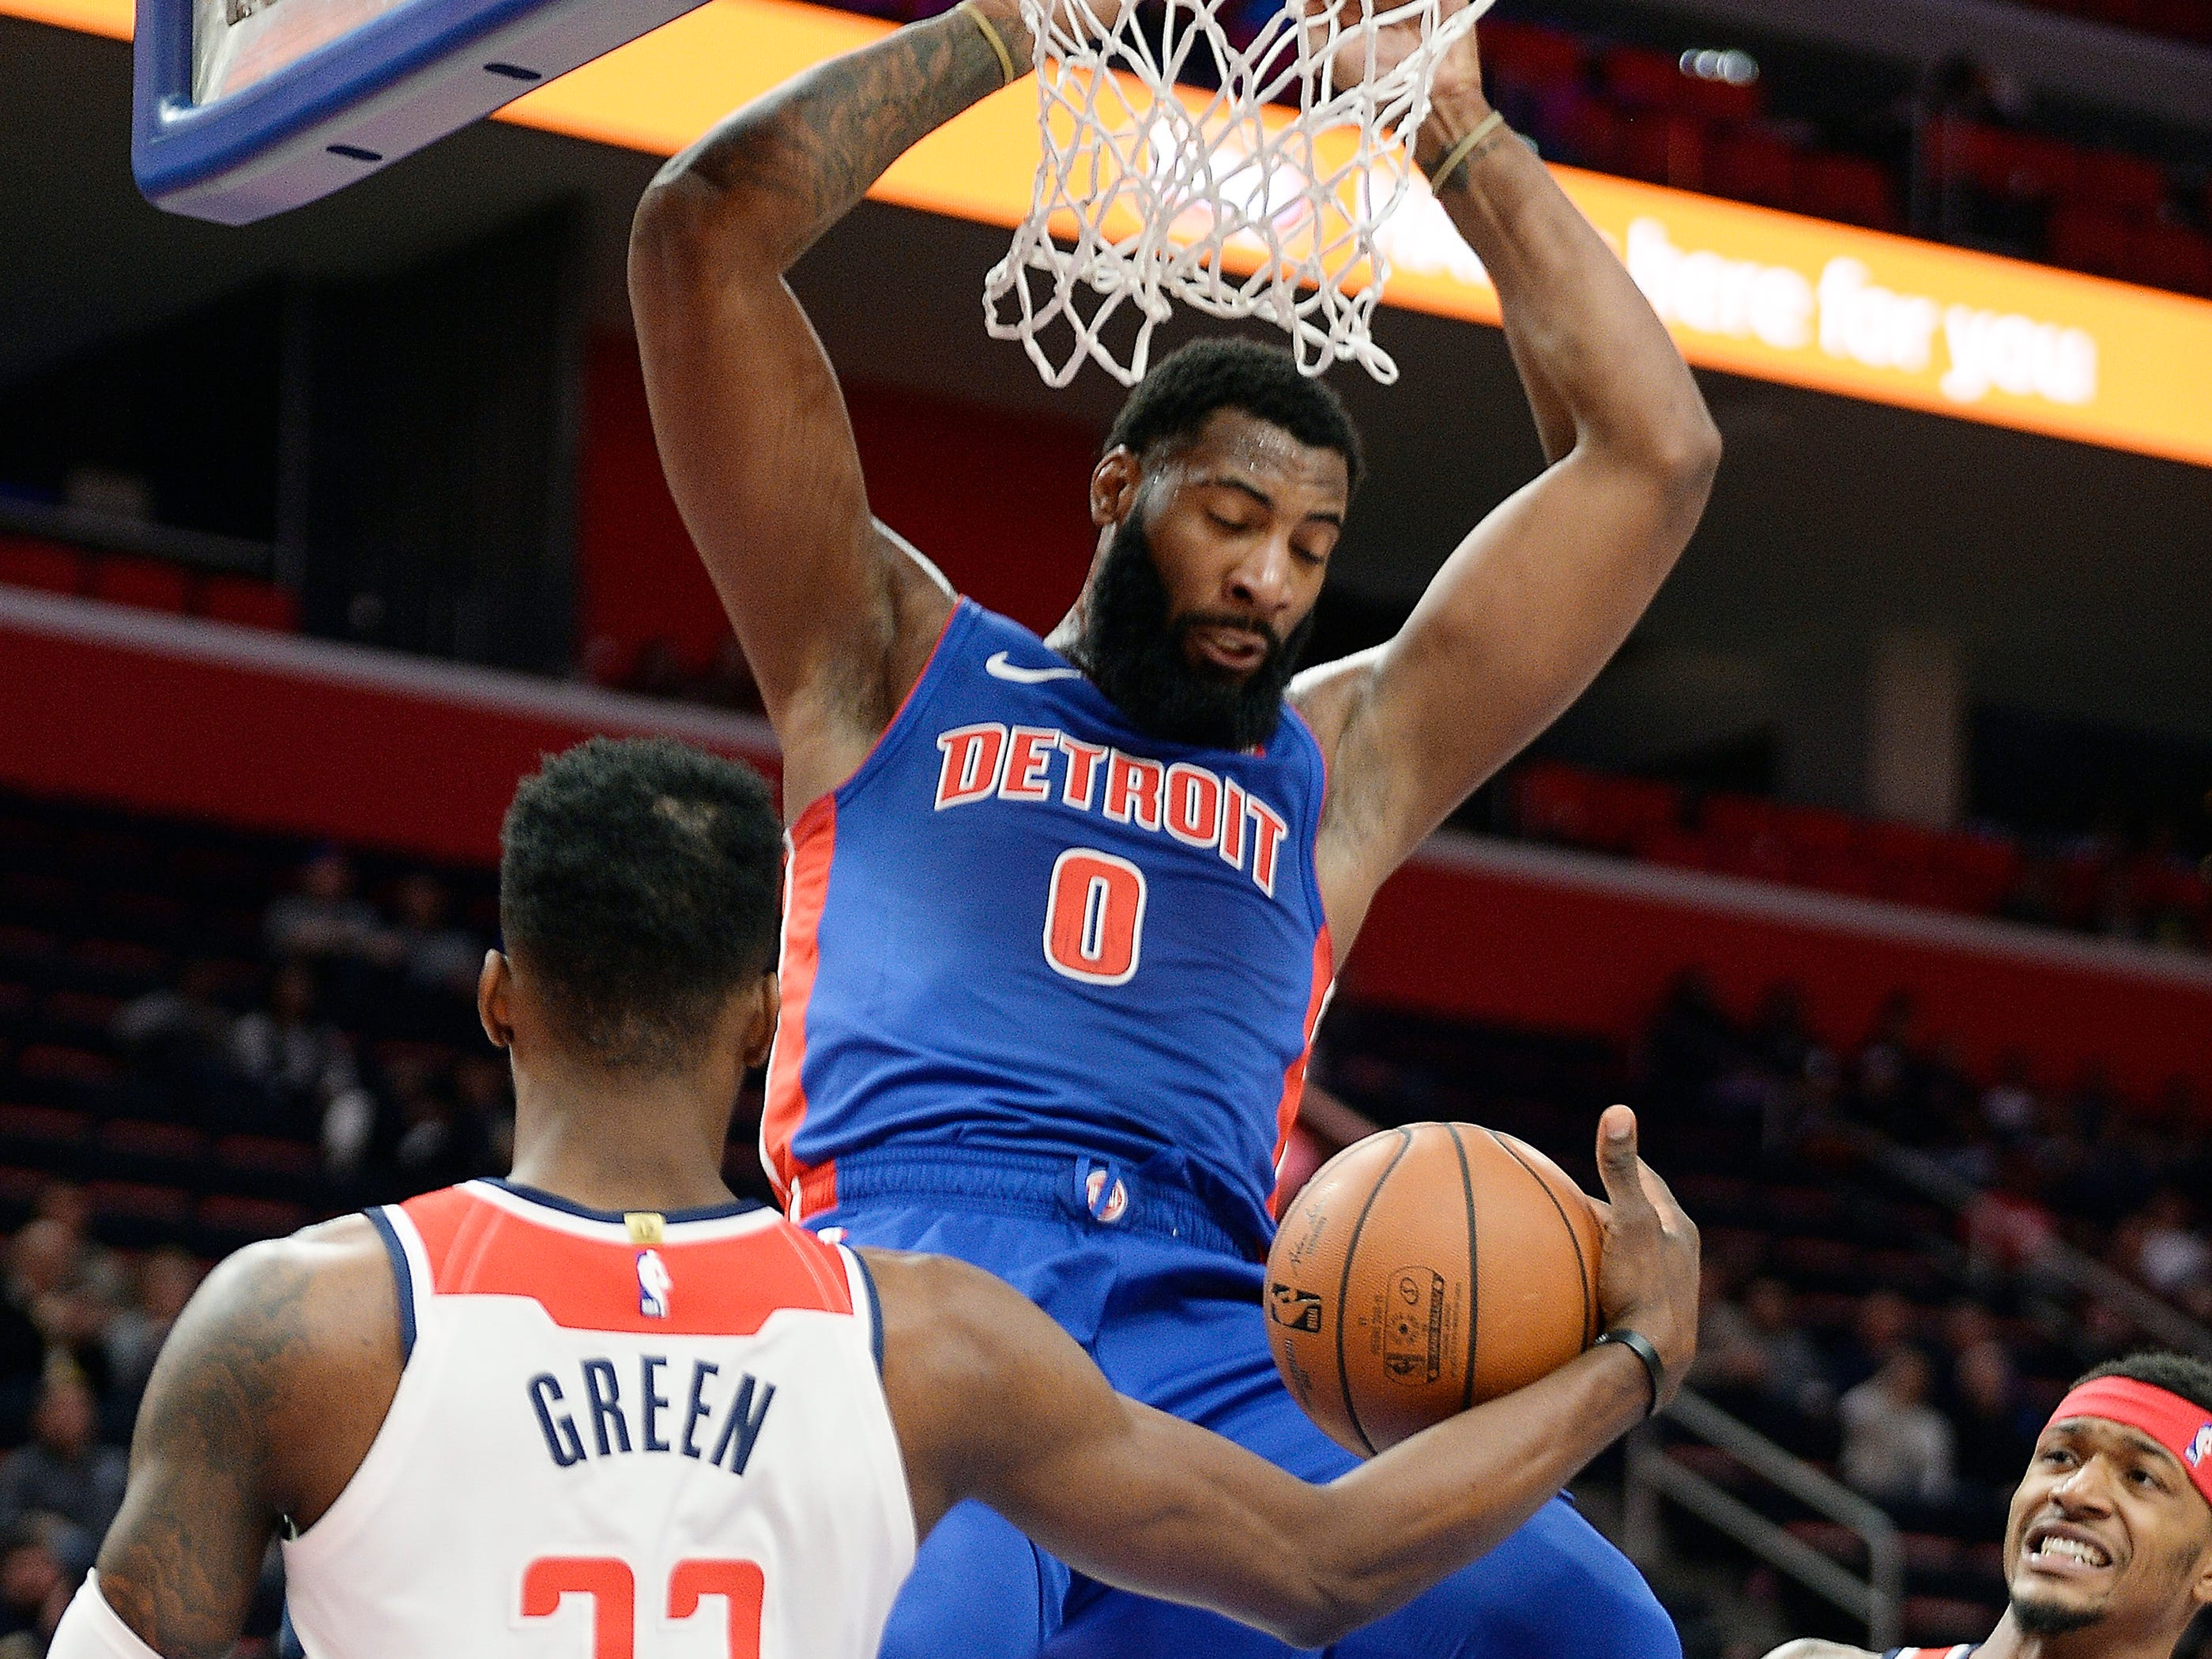 Pistons' Andre Drummond dunks over Wizards' Jeff Green in the second quarter.  Detroit Pistons vs Washington Wizards, Little Caesars Arena., February 11, 2019, Detroit, Mi.